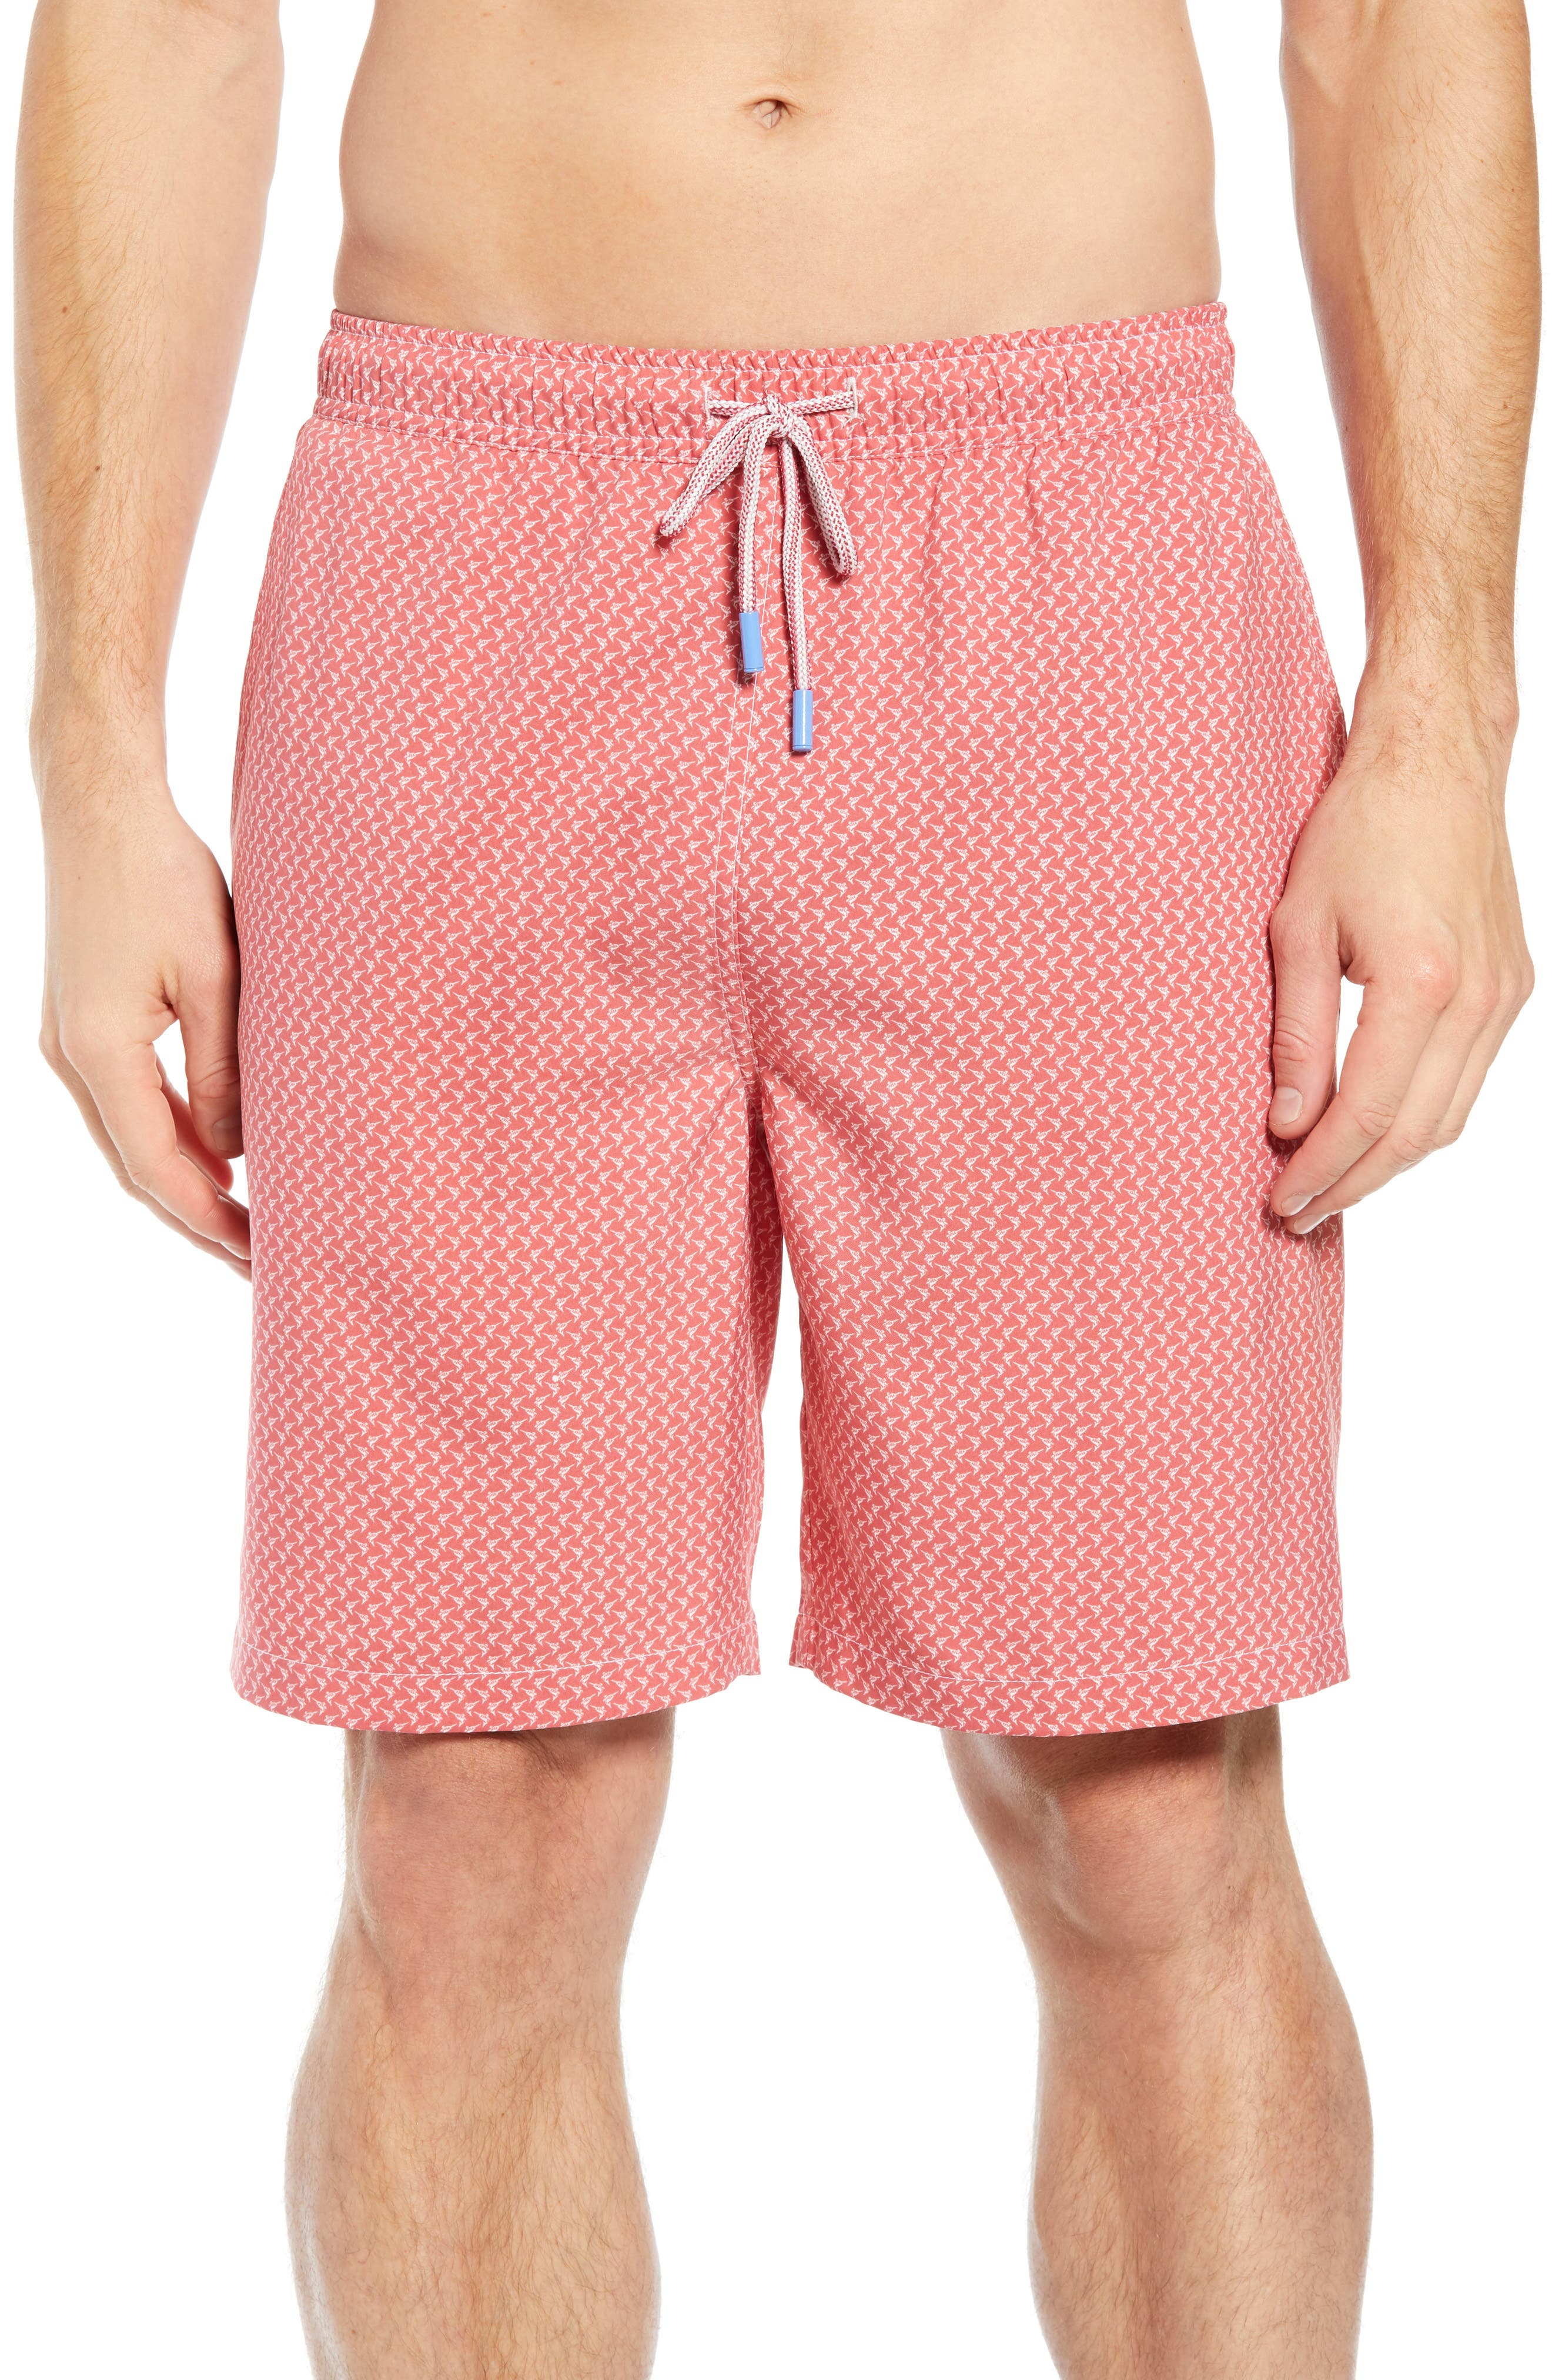 Peter Millar Bill Fish Swim Trunks, Pink